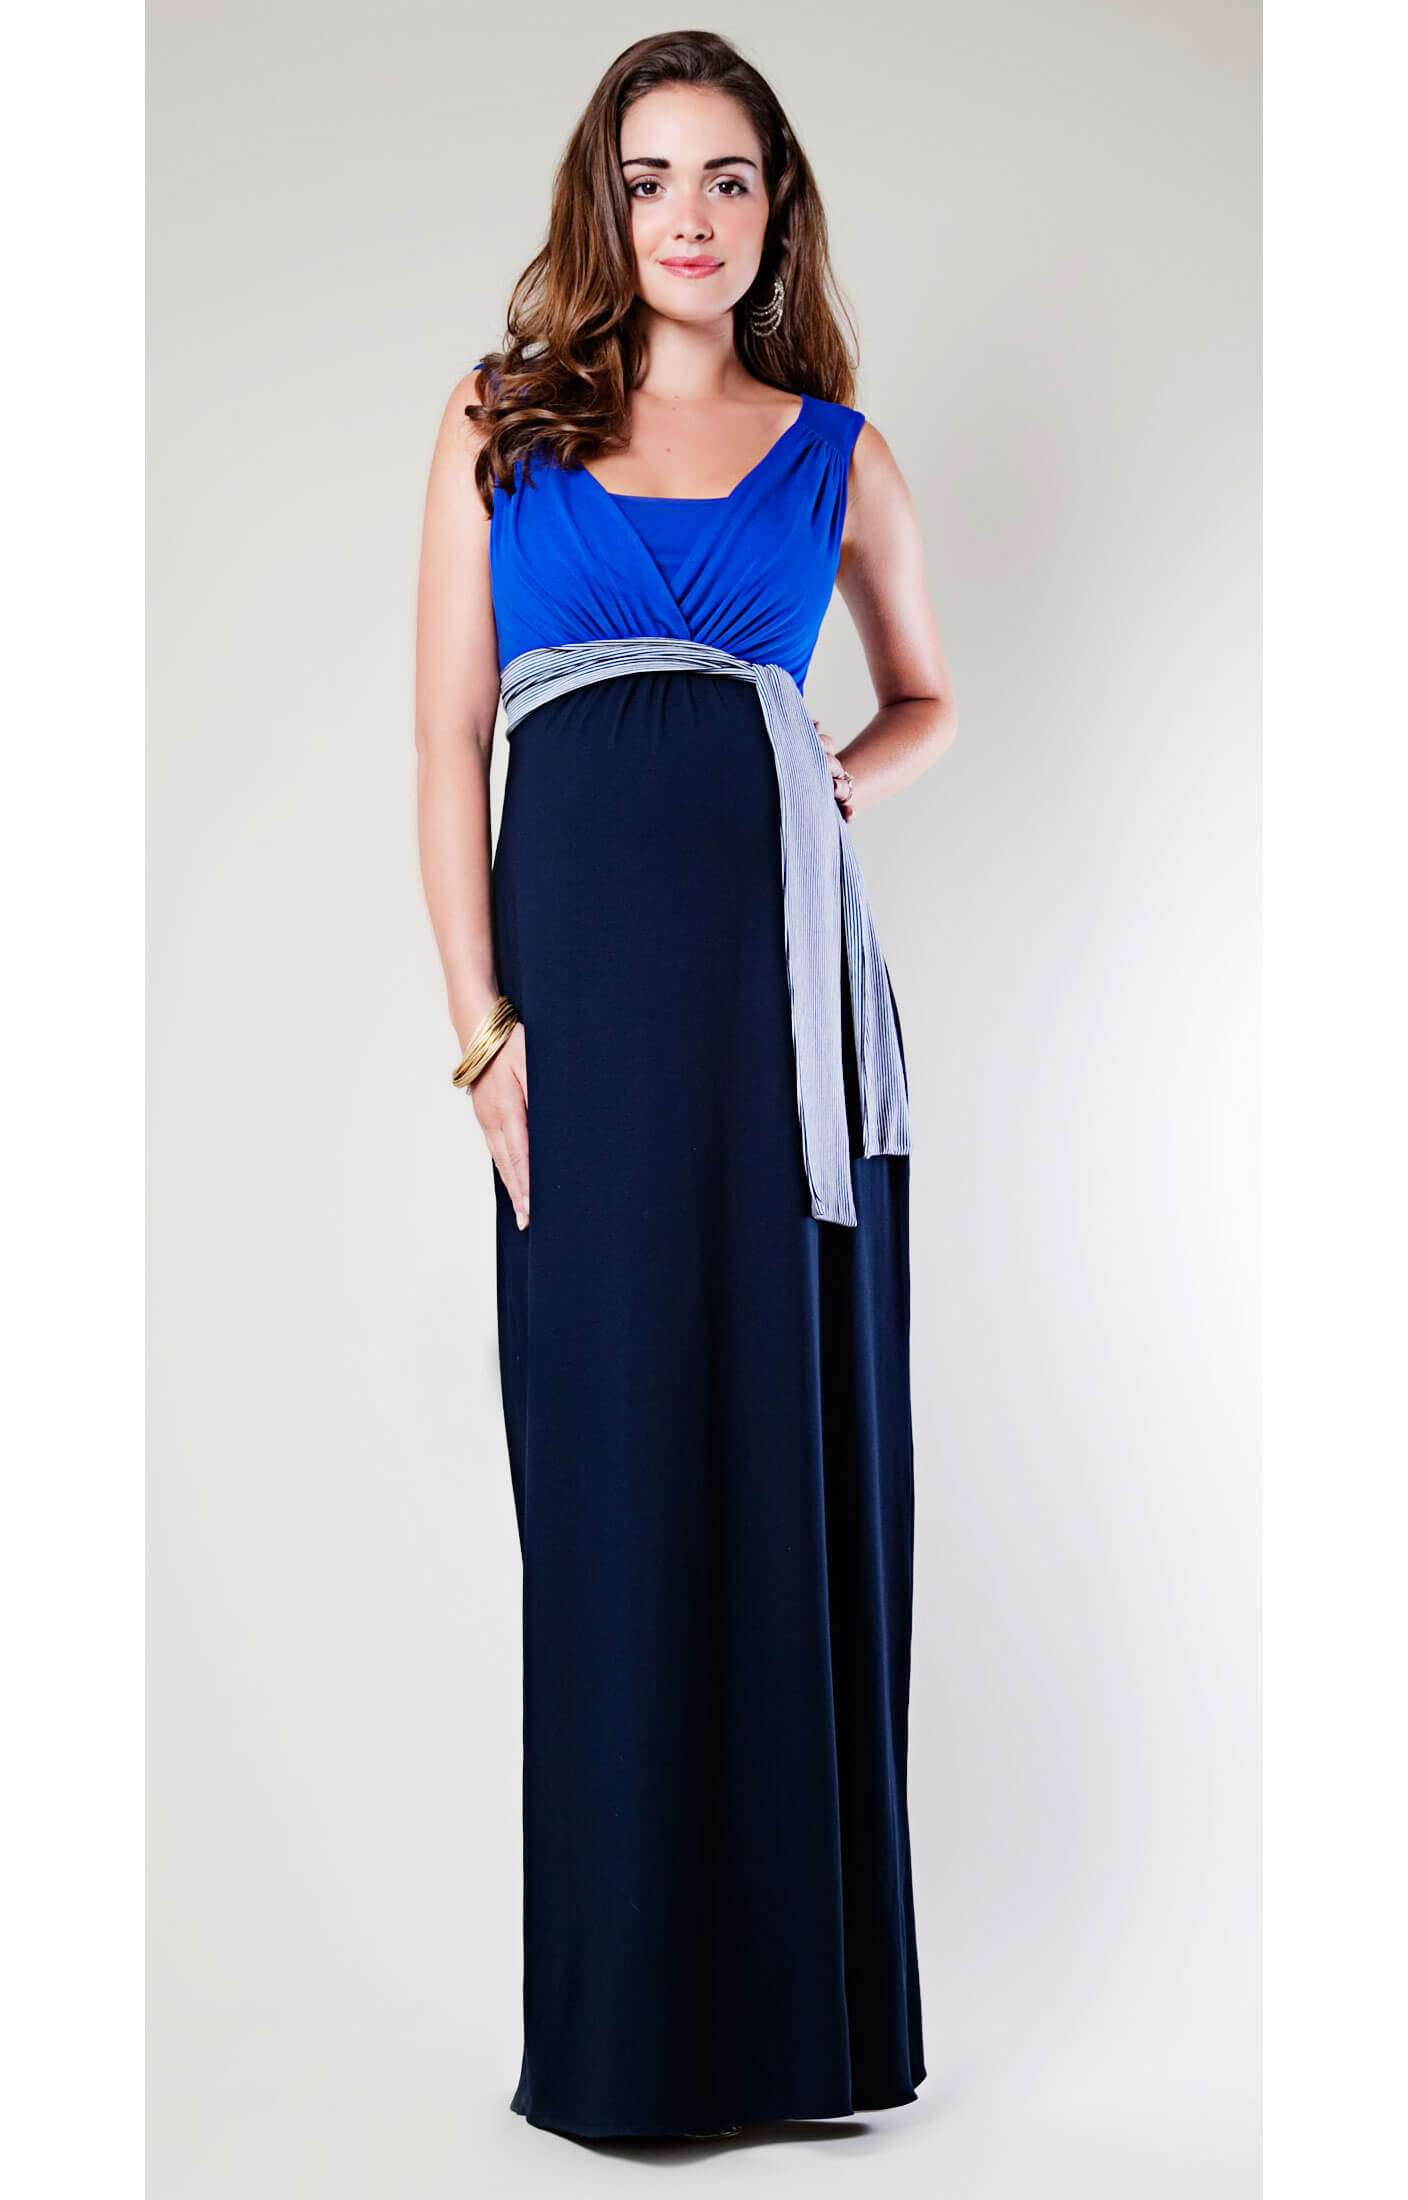 Maxi maternity dresses for weddings dress ideas for Maternity dress for a wedding